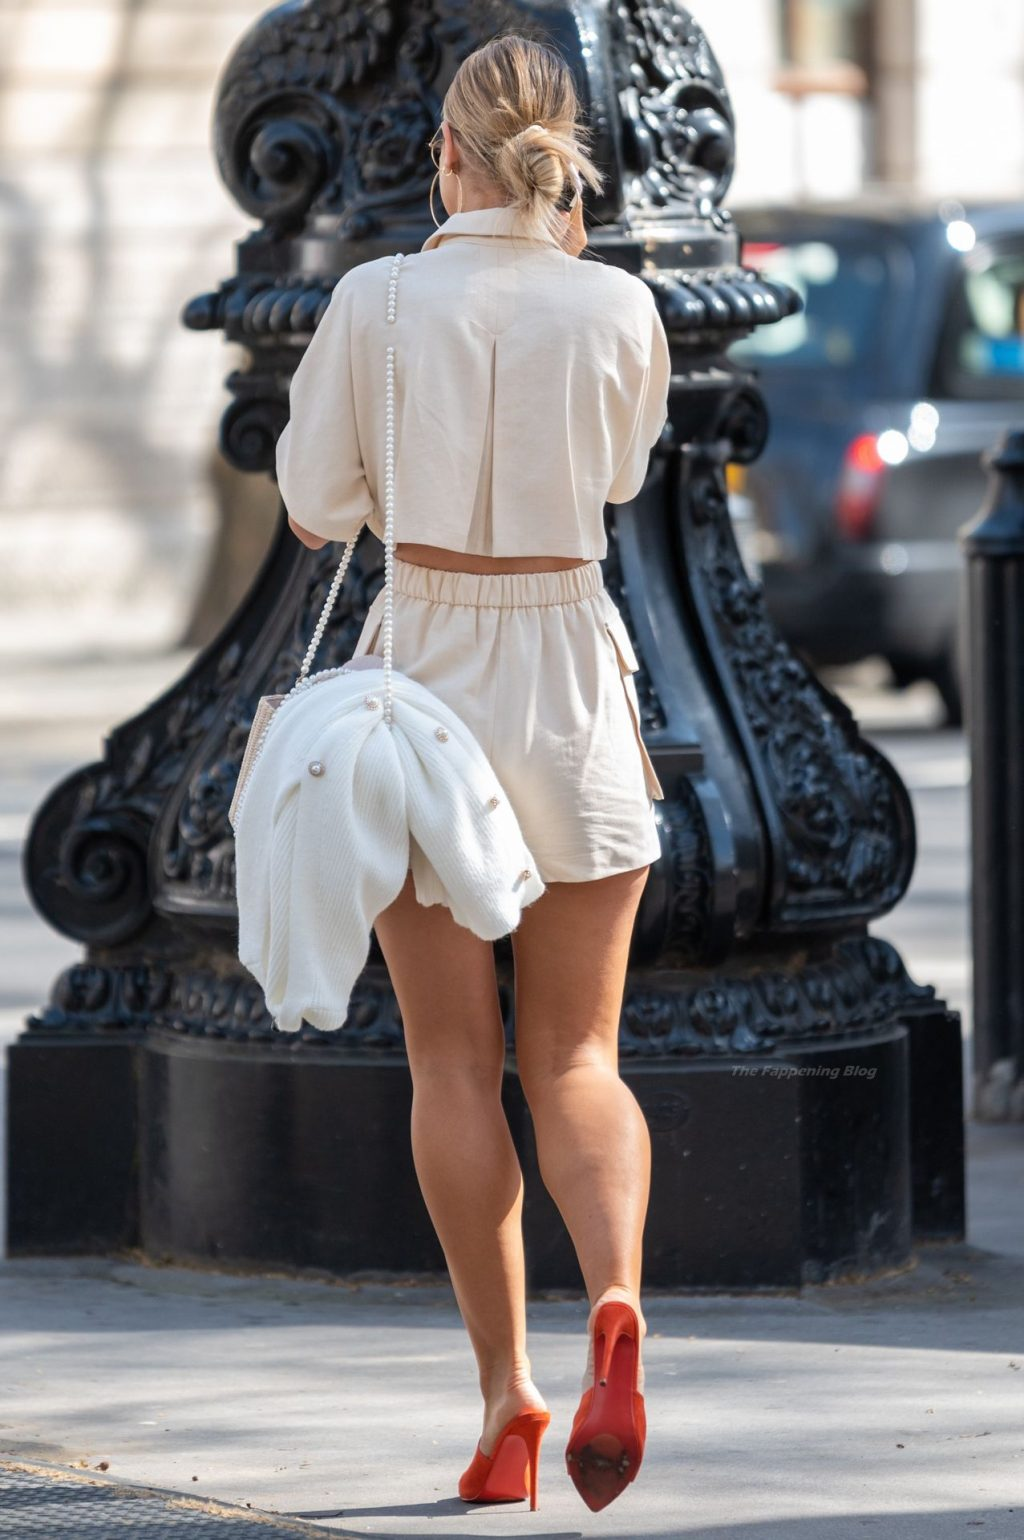 Vogue Williams Shows Off Her Sexy Legs in London (7 Photos)